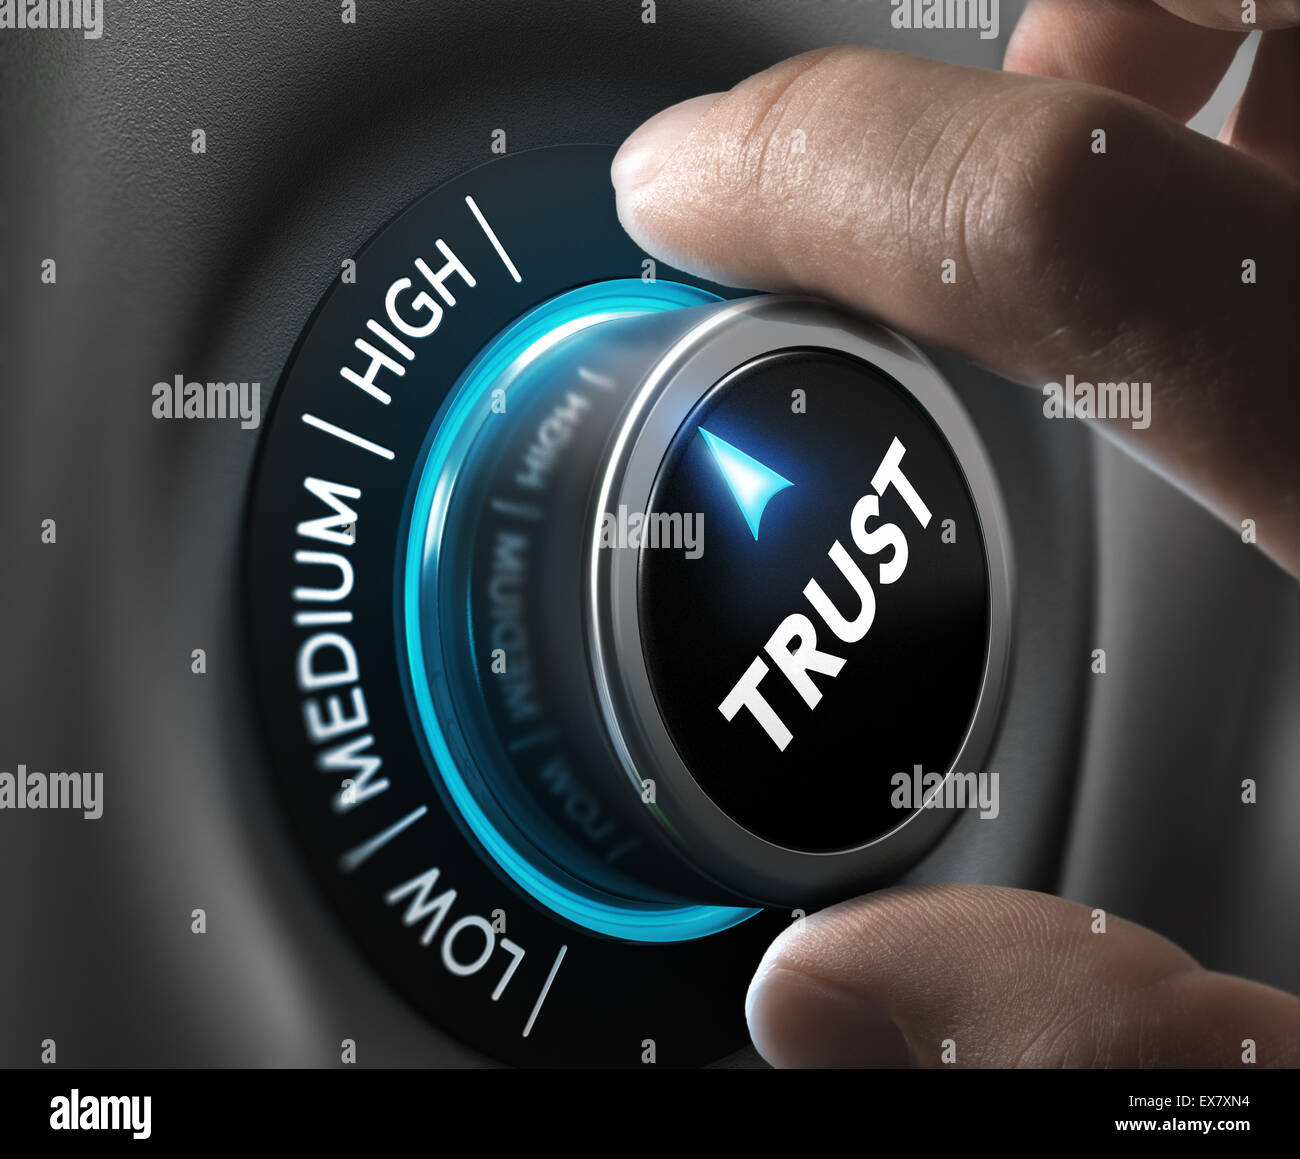 Man fingers setting trust button on highest position. Concept image for illustration of high confidence level. - Stock Image